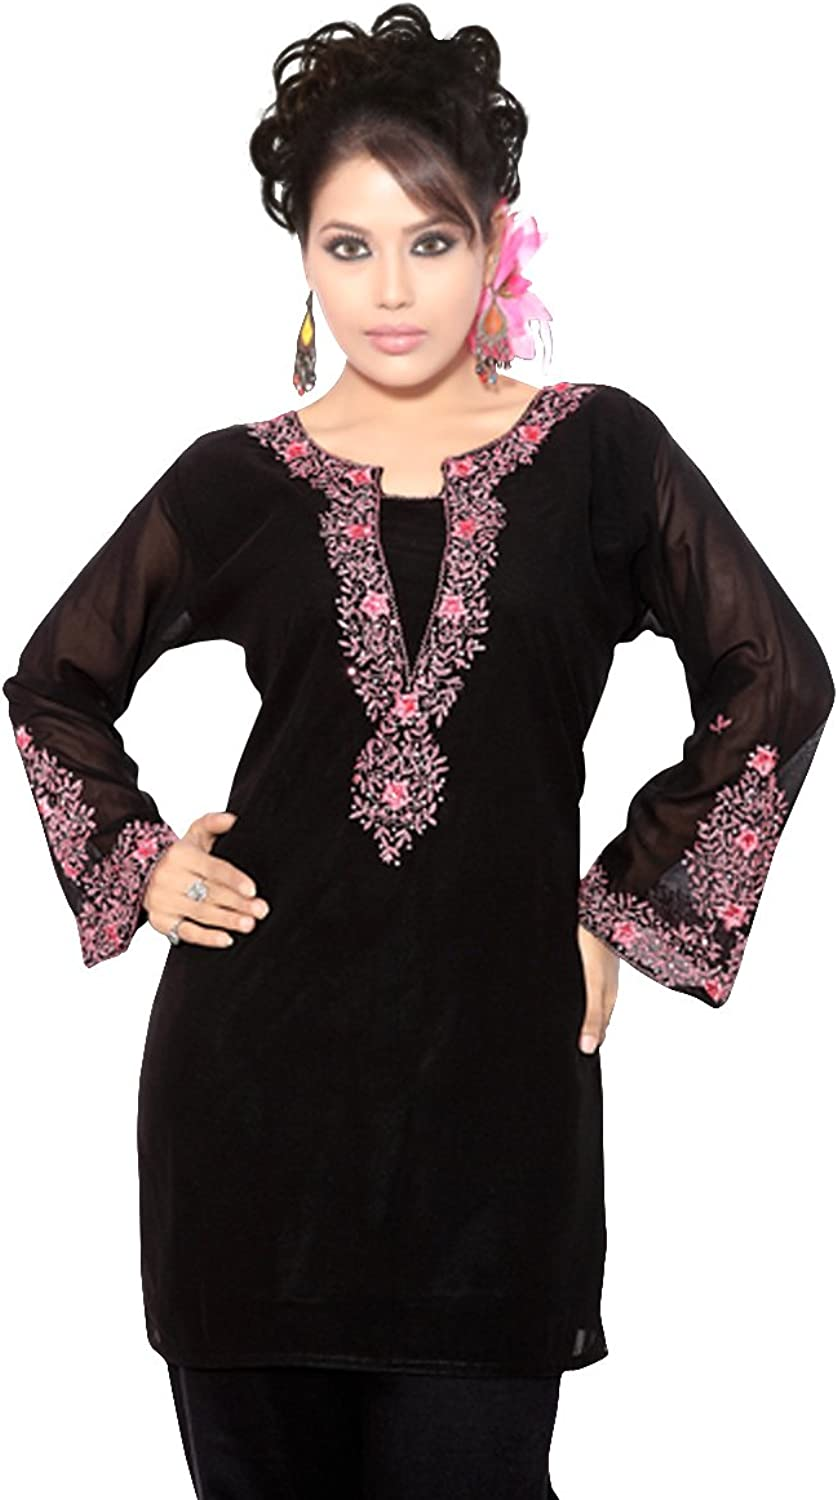 Indian Selections Black Long Sleeves Kurti Tunic with Designer Embroidery